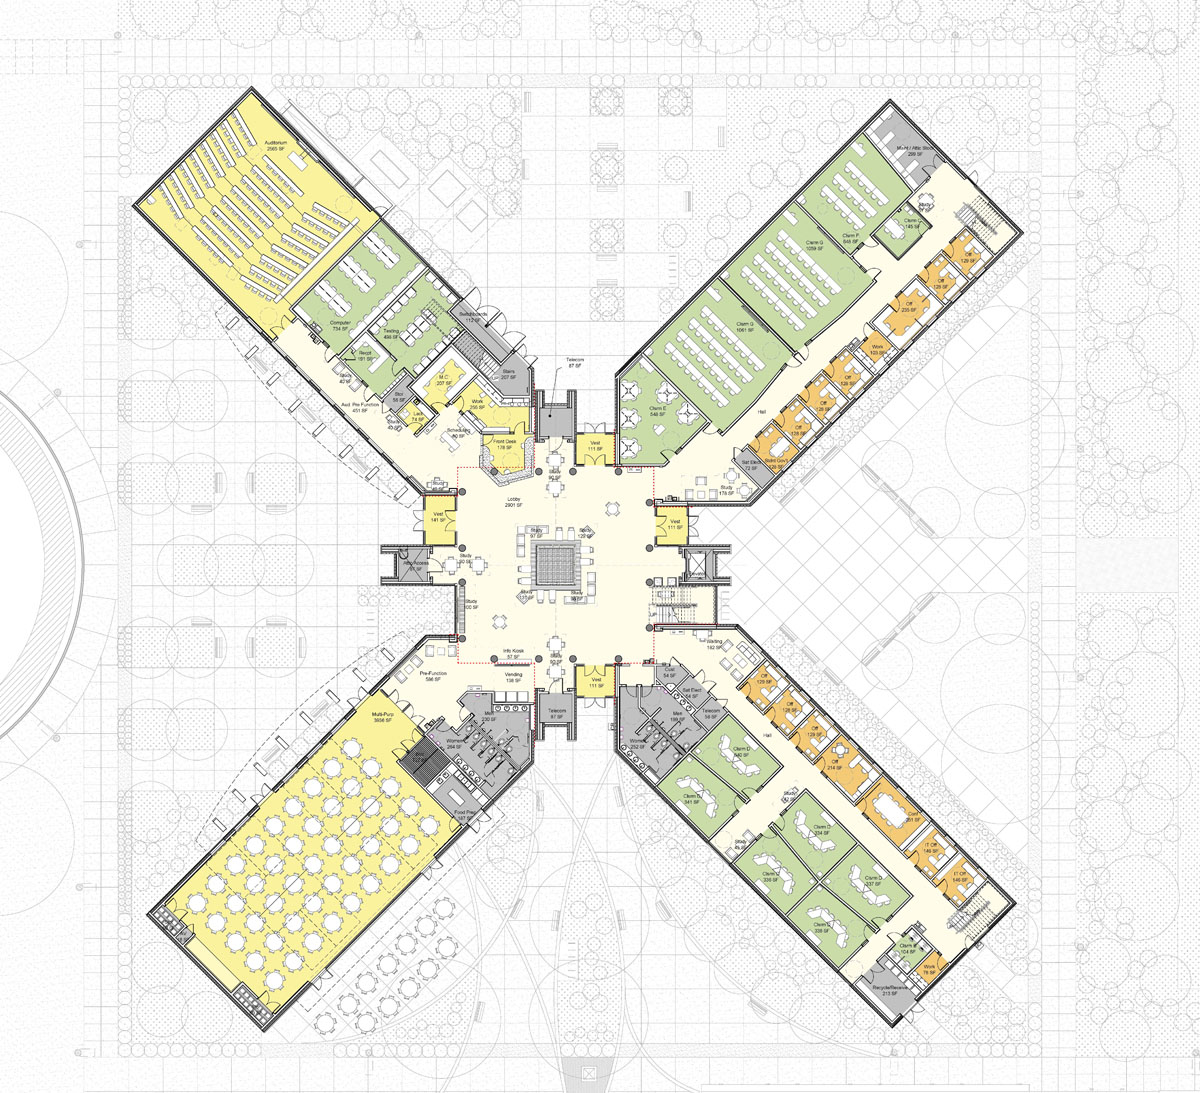 Computer floor plan of the campus starter concept building with four wings laid out in an X pattern.